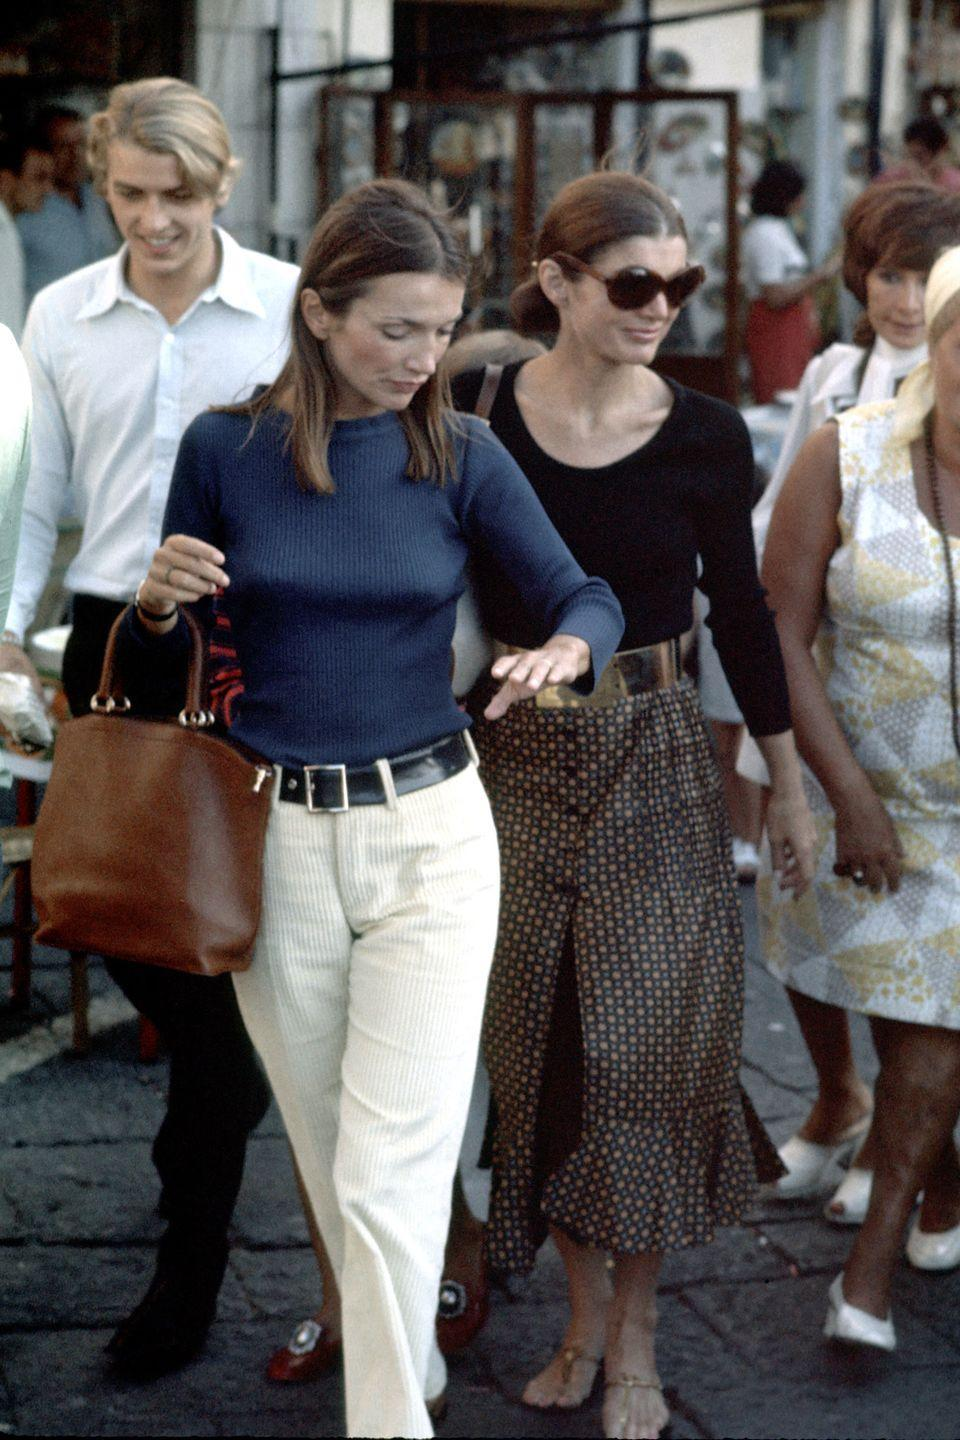 <p>These sisters have Italian vacation style on lock. Jackie wears a belted polka dot maxi skirt, while Lee goes for khaki trousers and a navy top in Capri.</p>